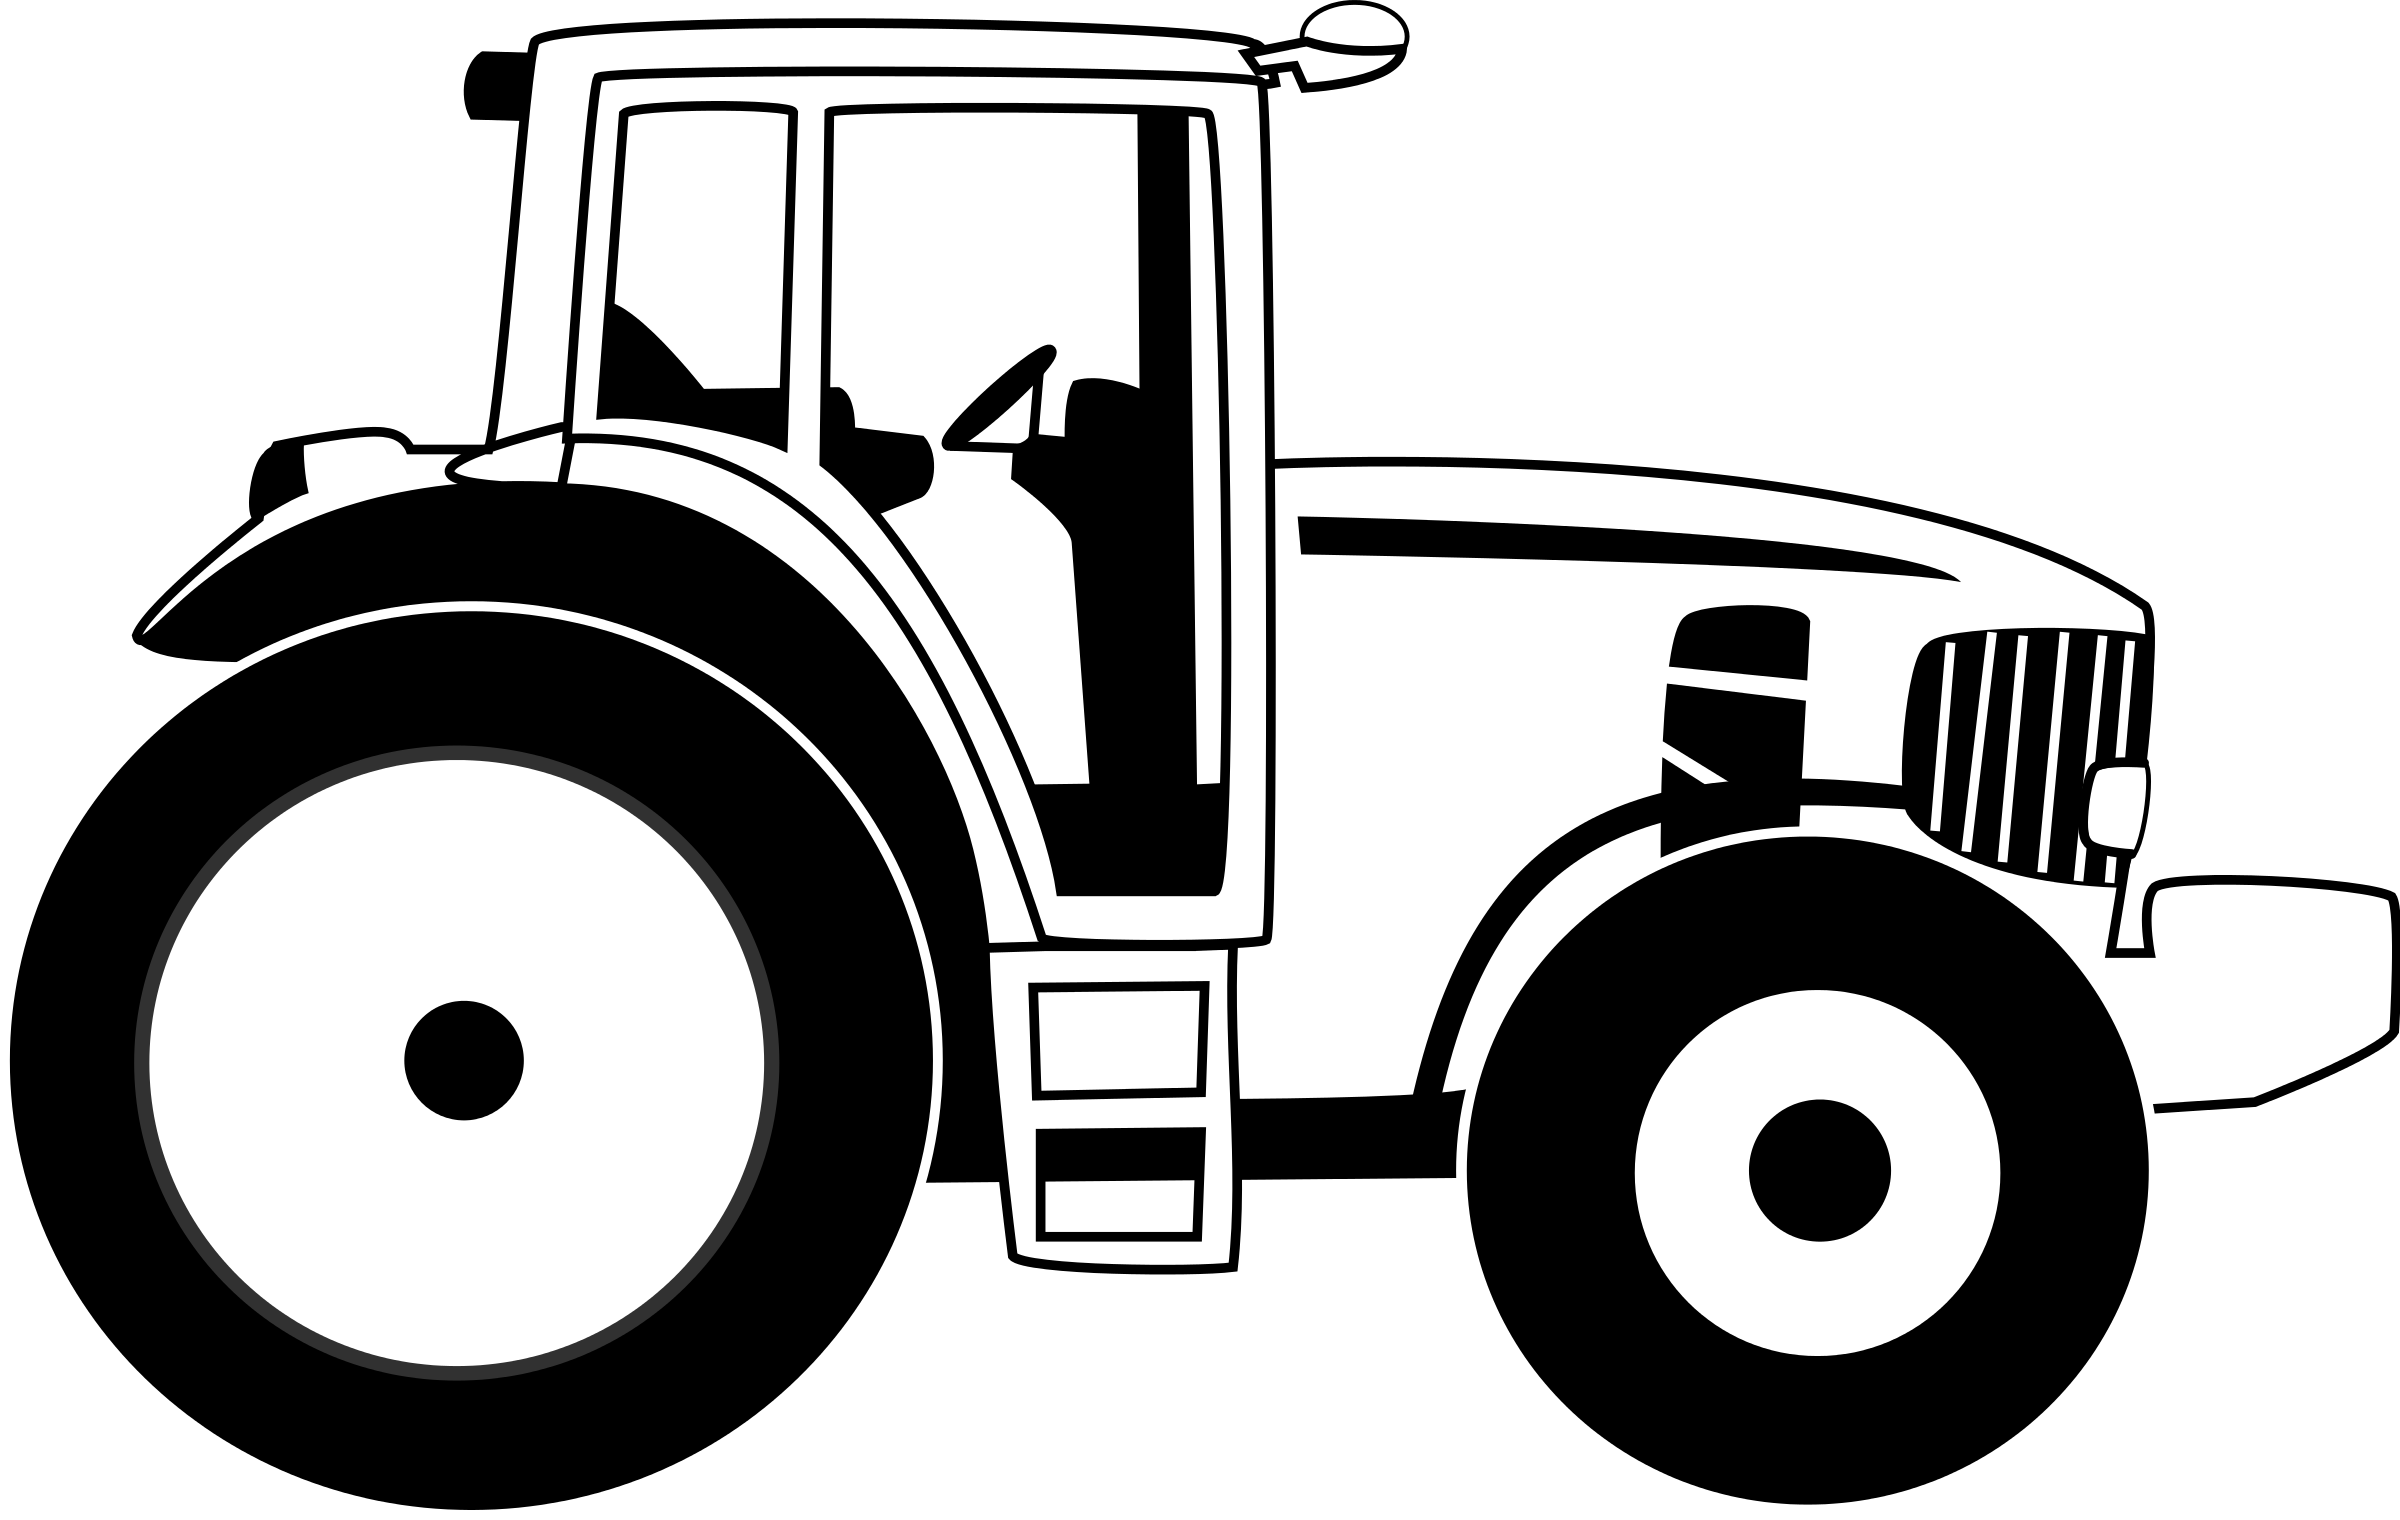 Free Tractor, Download Free Clip Art, Free Clip Art on.